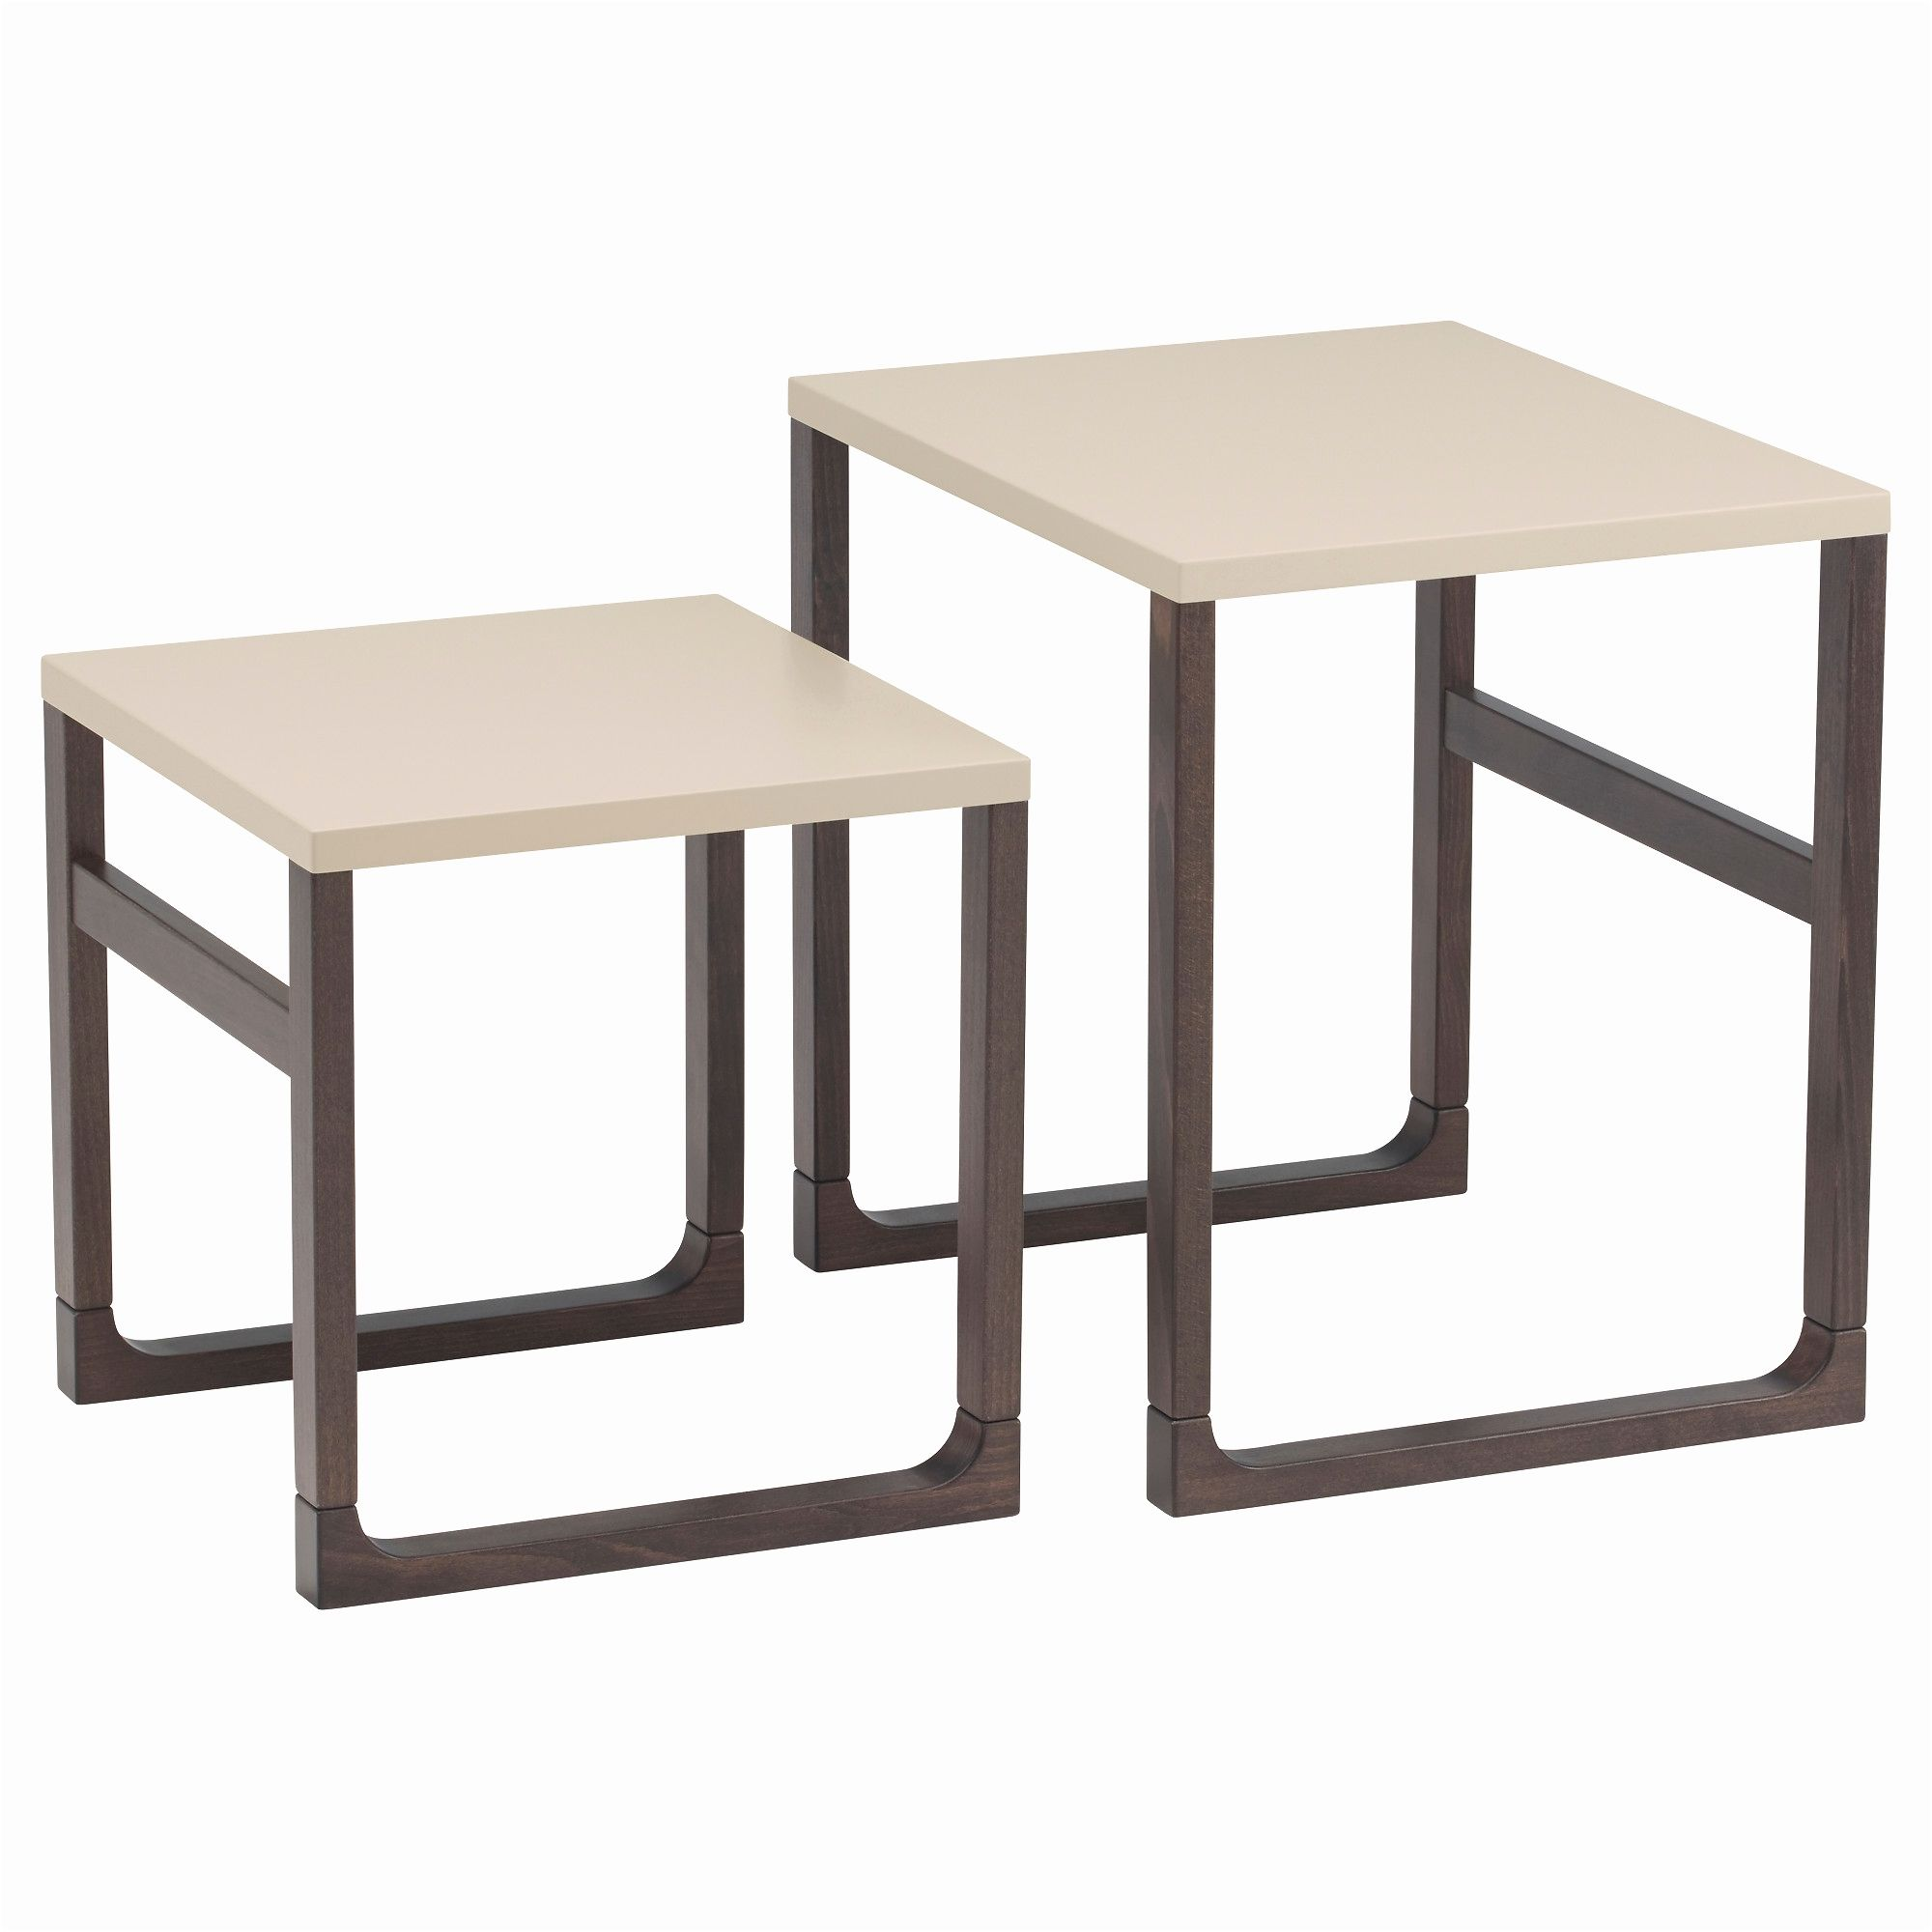 fresh sofa tables ikea design-Awesome sofa Tables Ikea Design